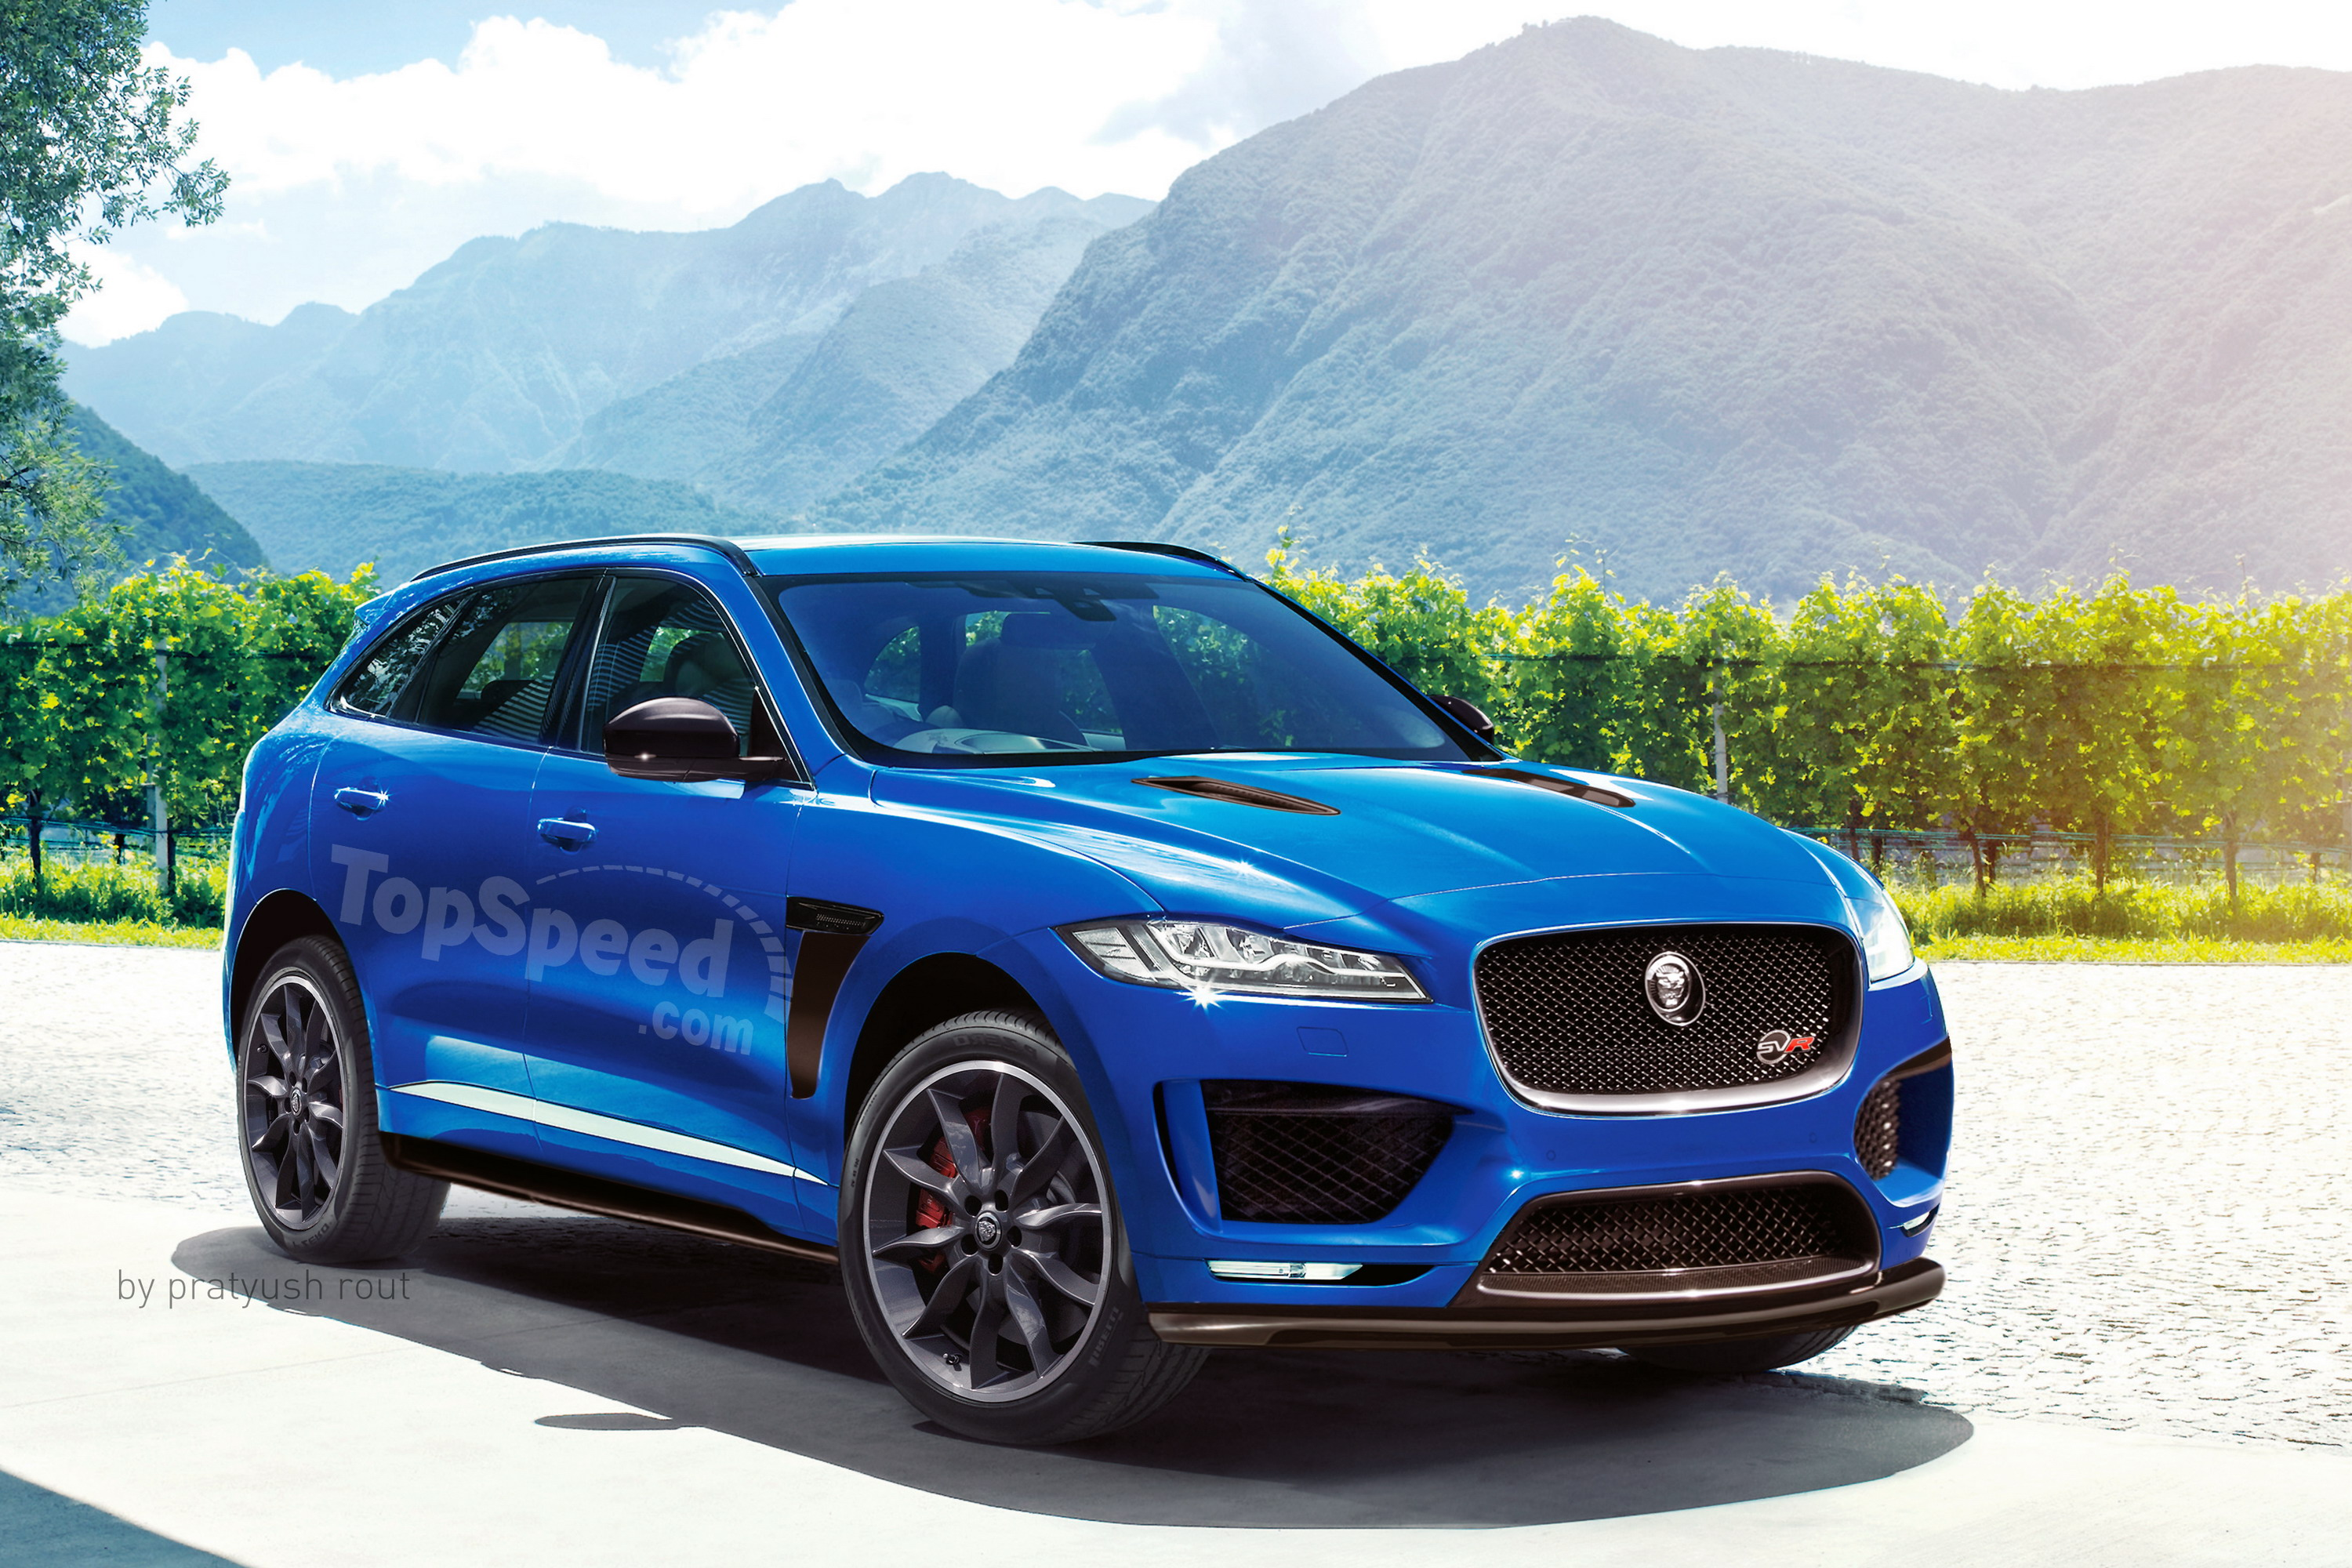 cars cylinder litre entry four a f with and for of turbo power price type rwd jaguar arrives new coupe australia level lower features quickshift